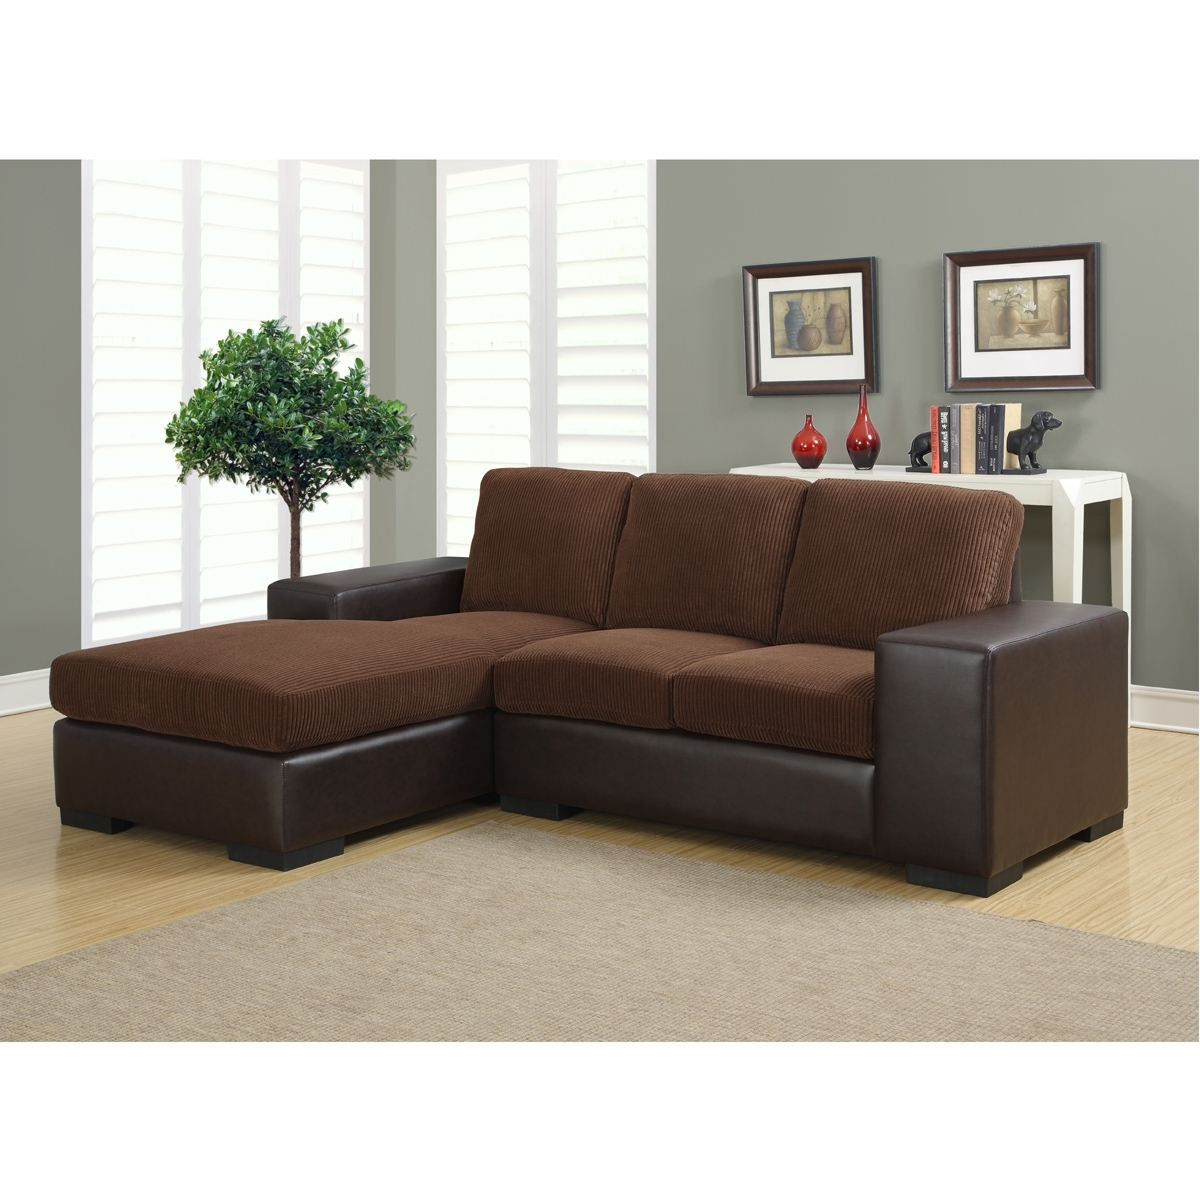 Jacob Sectional Sofa (View 6 of 15)